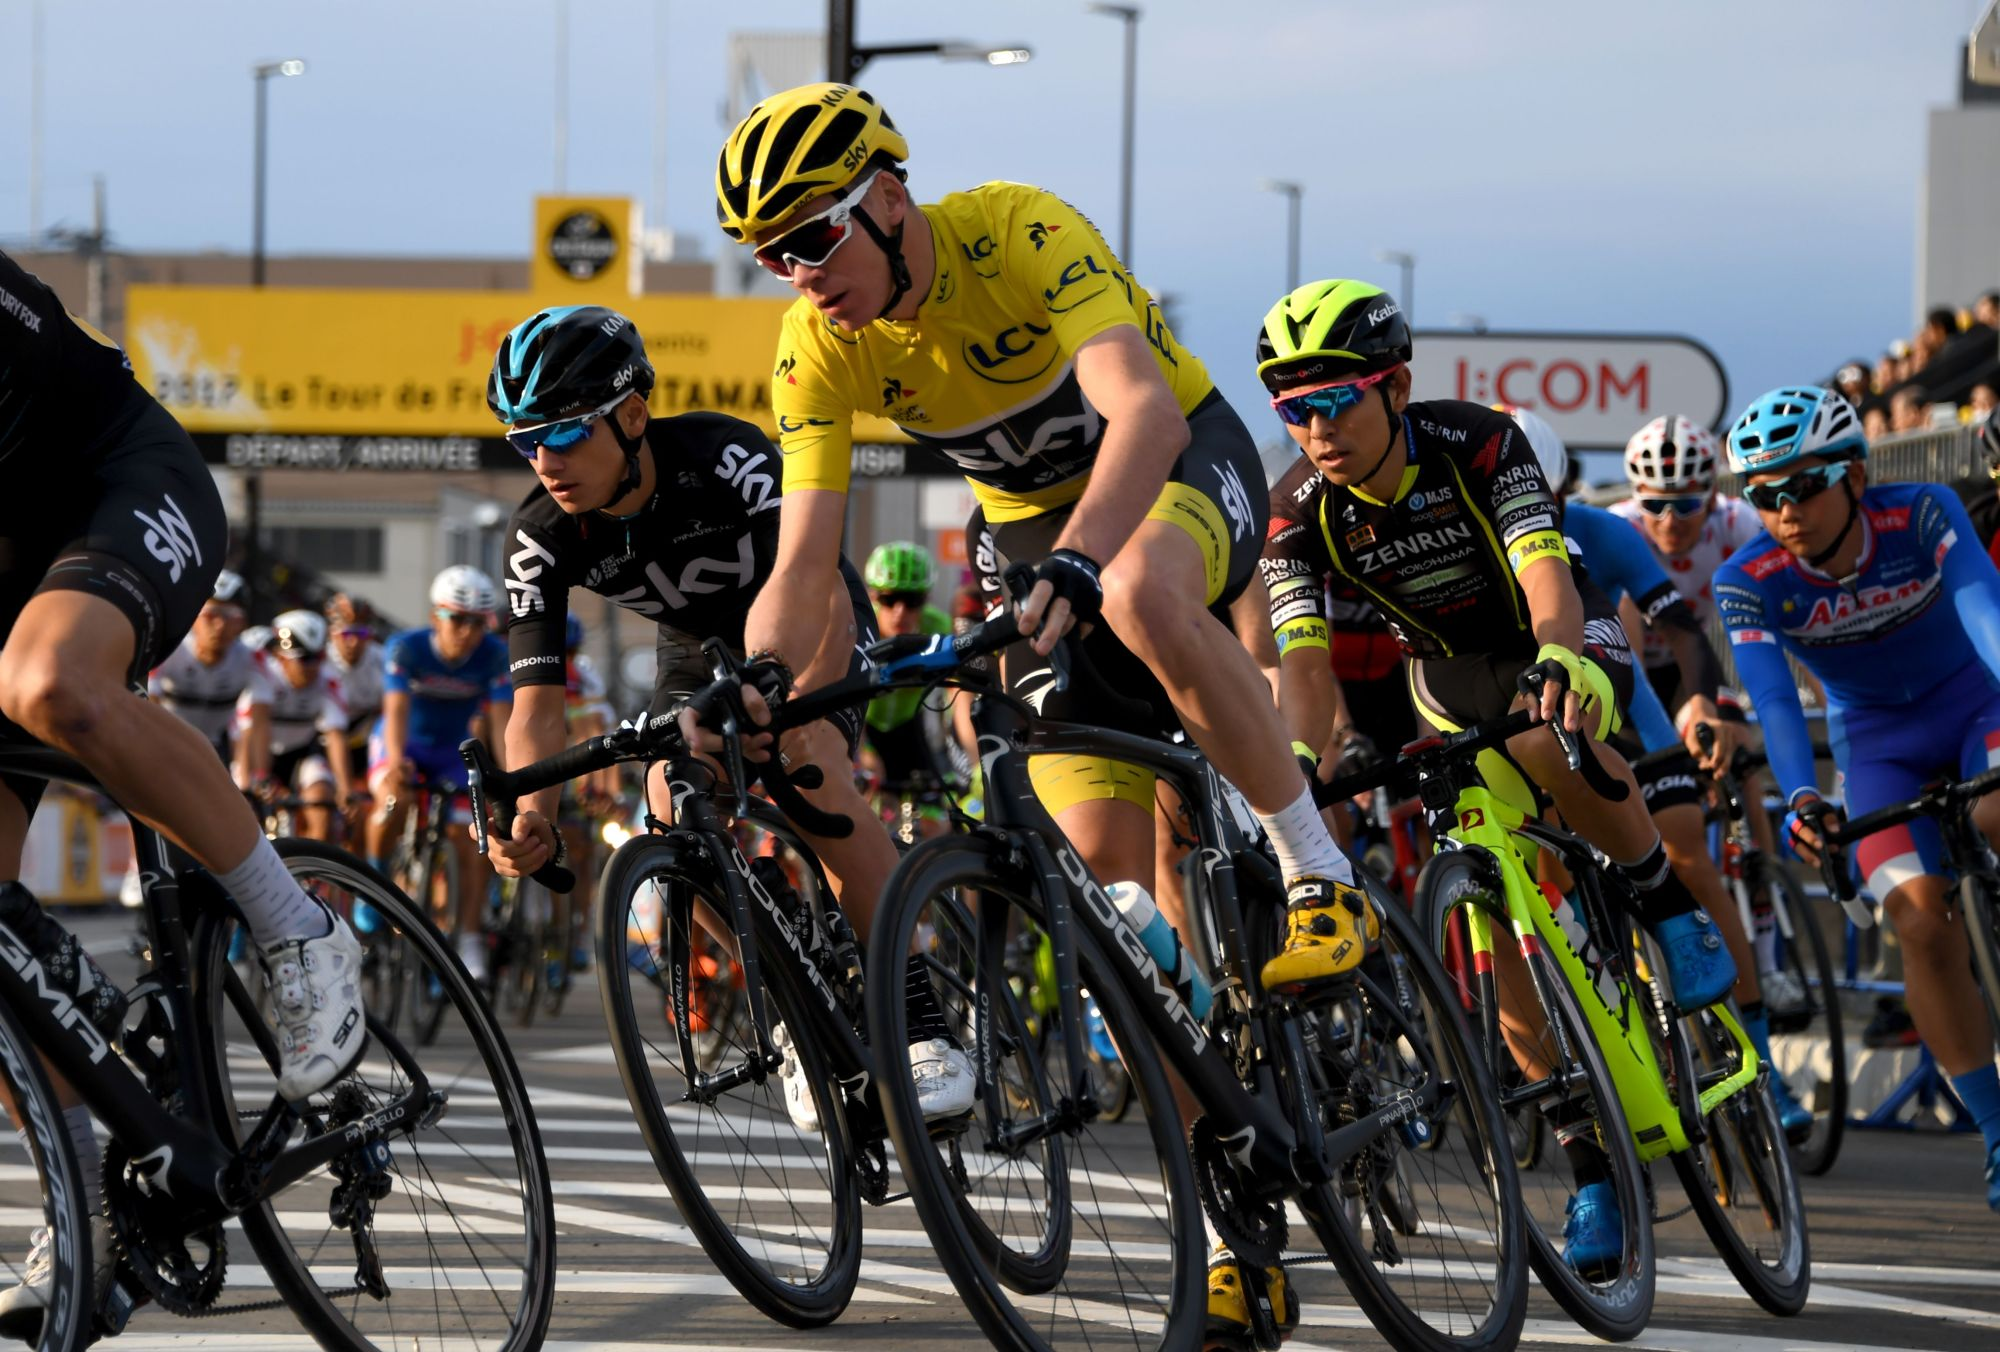 Britain's Chris Froome competes in the Saitama Criterium road race on Saturday. | AFP-JIJI